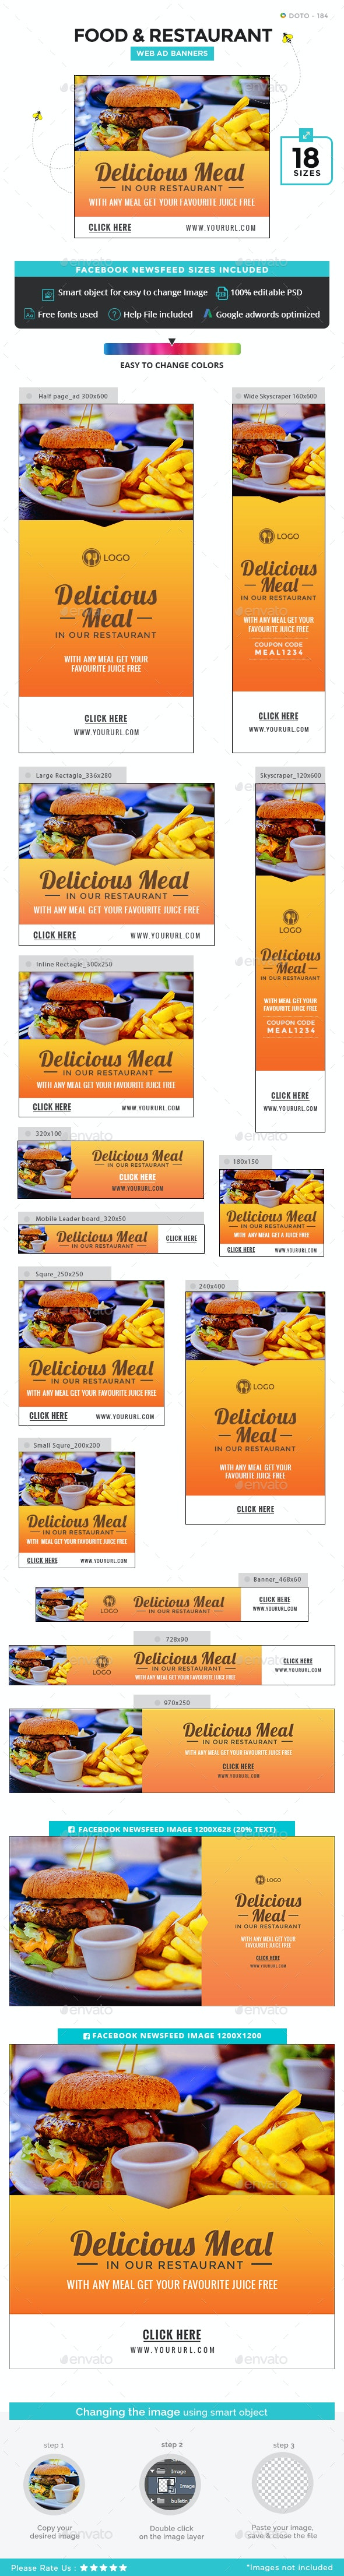 Food and Restaurant Banners - Banners & Ads Web Elements